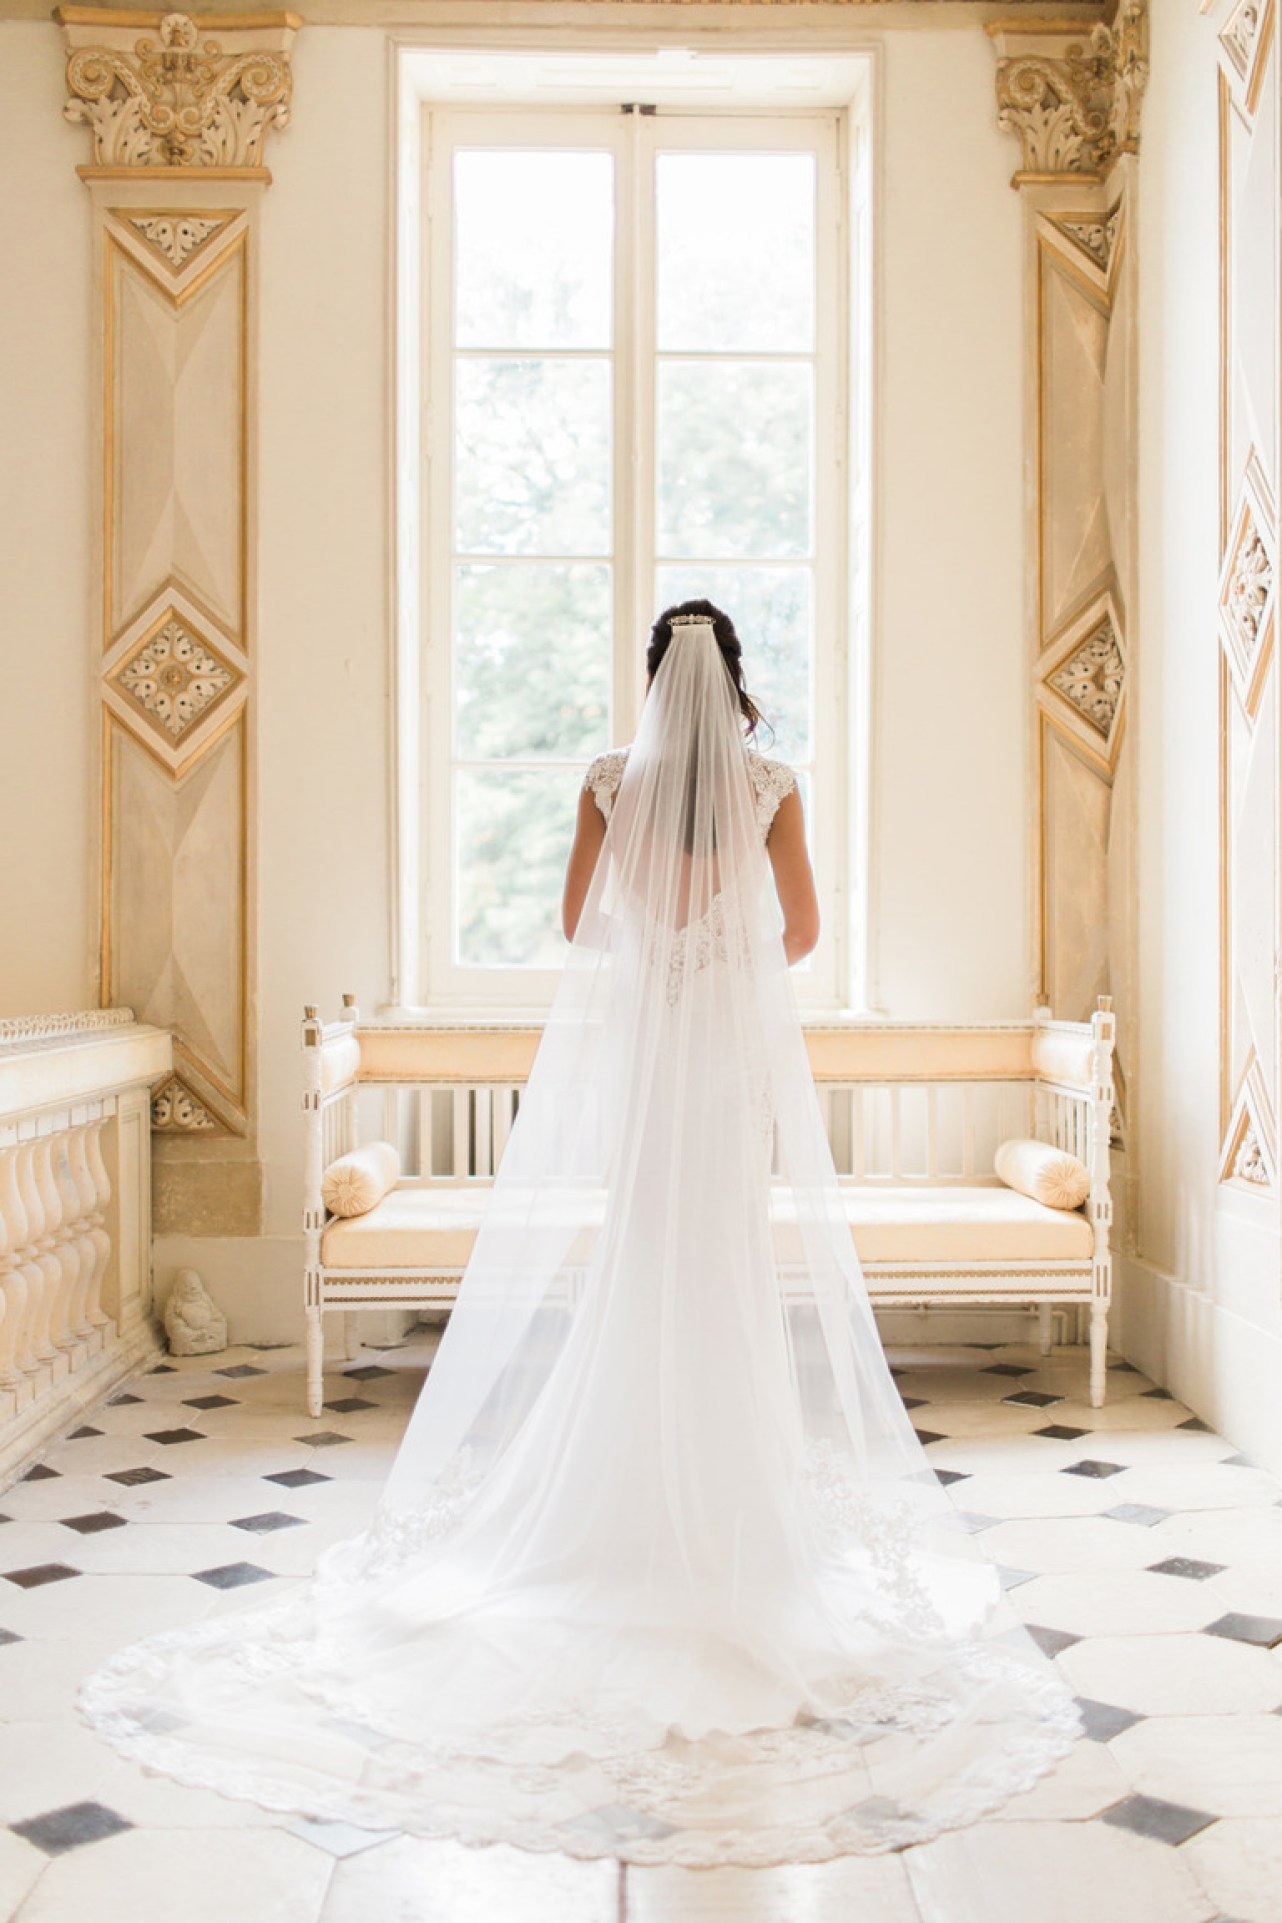 Bride in the Wedding Dress at Chateau la Durantie in France